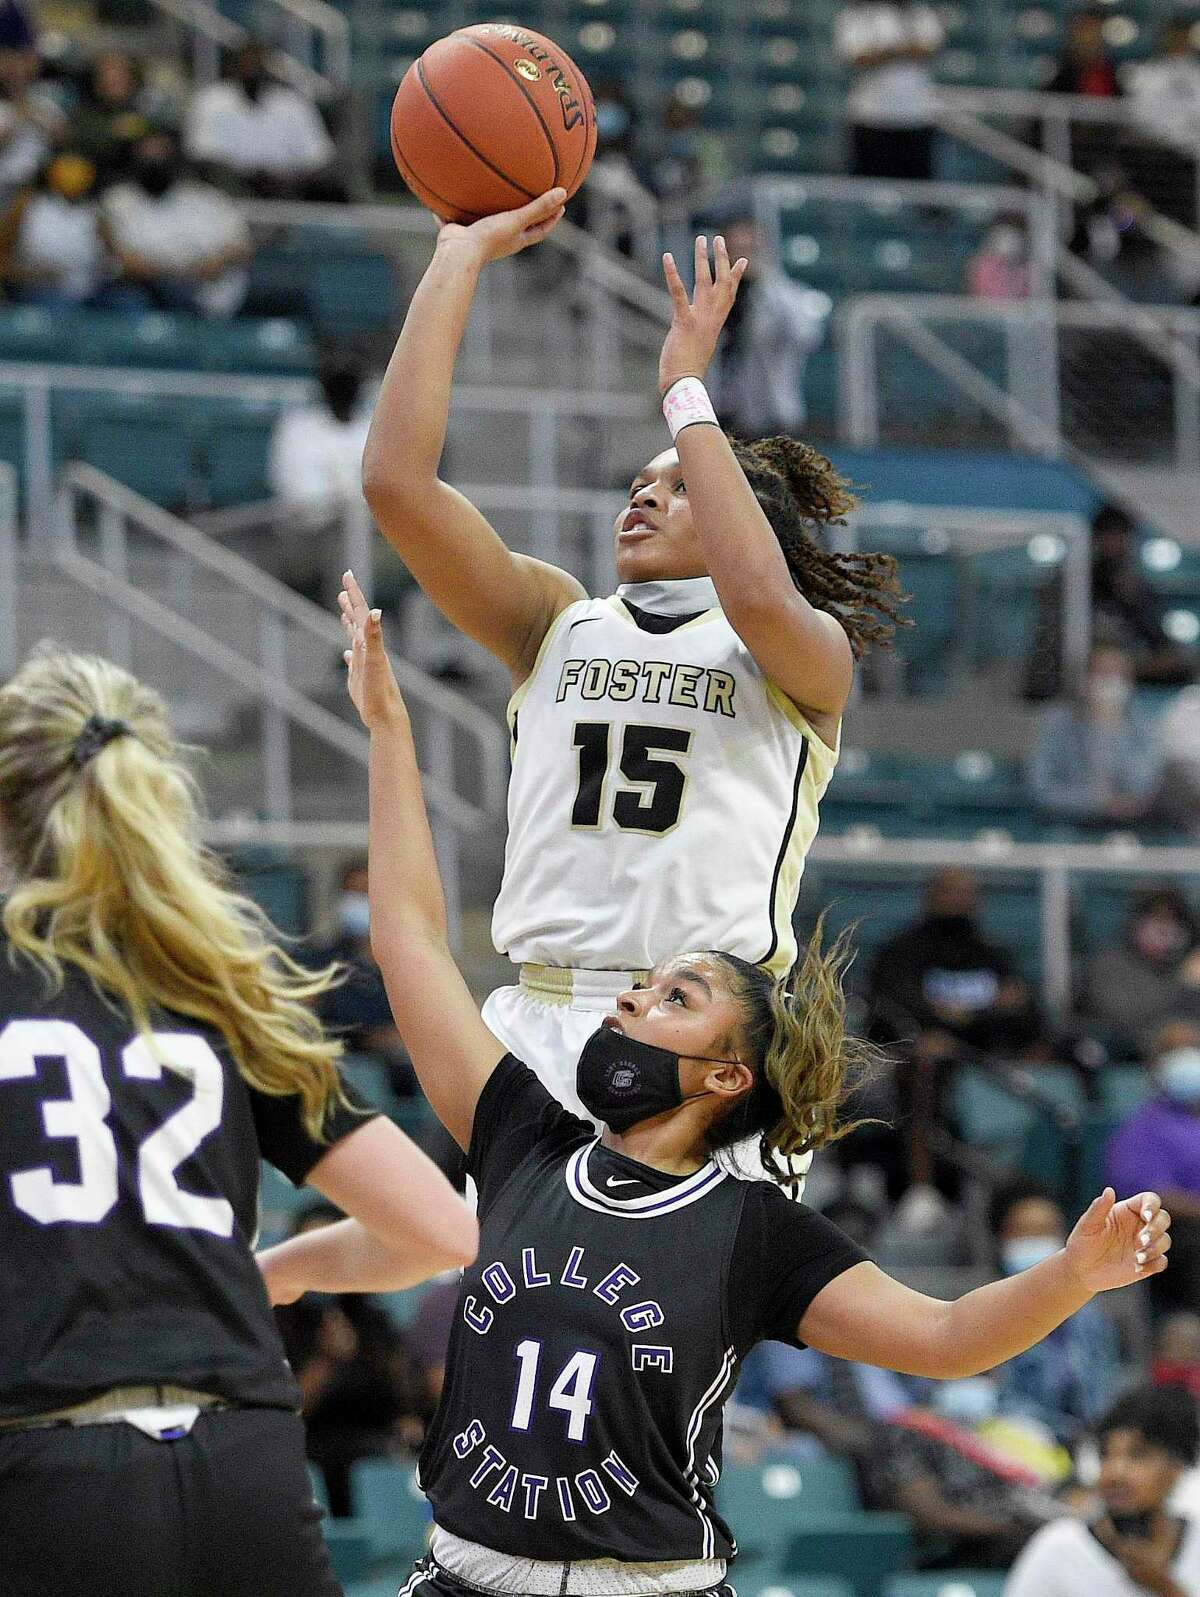 Foster guard Alicia Blanton (15) shoots over College Station guard Na'Layjah Johnson during the first half of a 5A Region III semifinal high school basketball playoff game, Friday, Feb. 26, 2021, in Katy, TX.